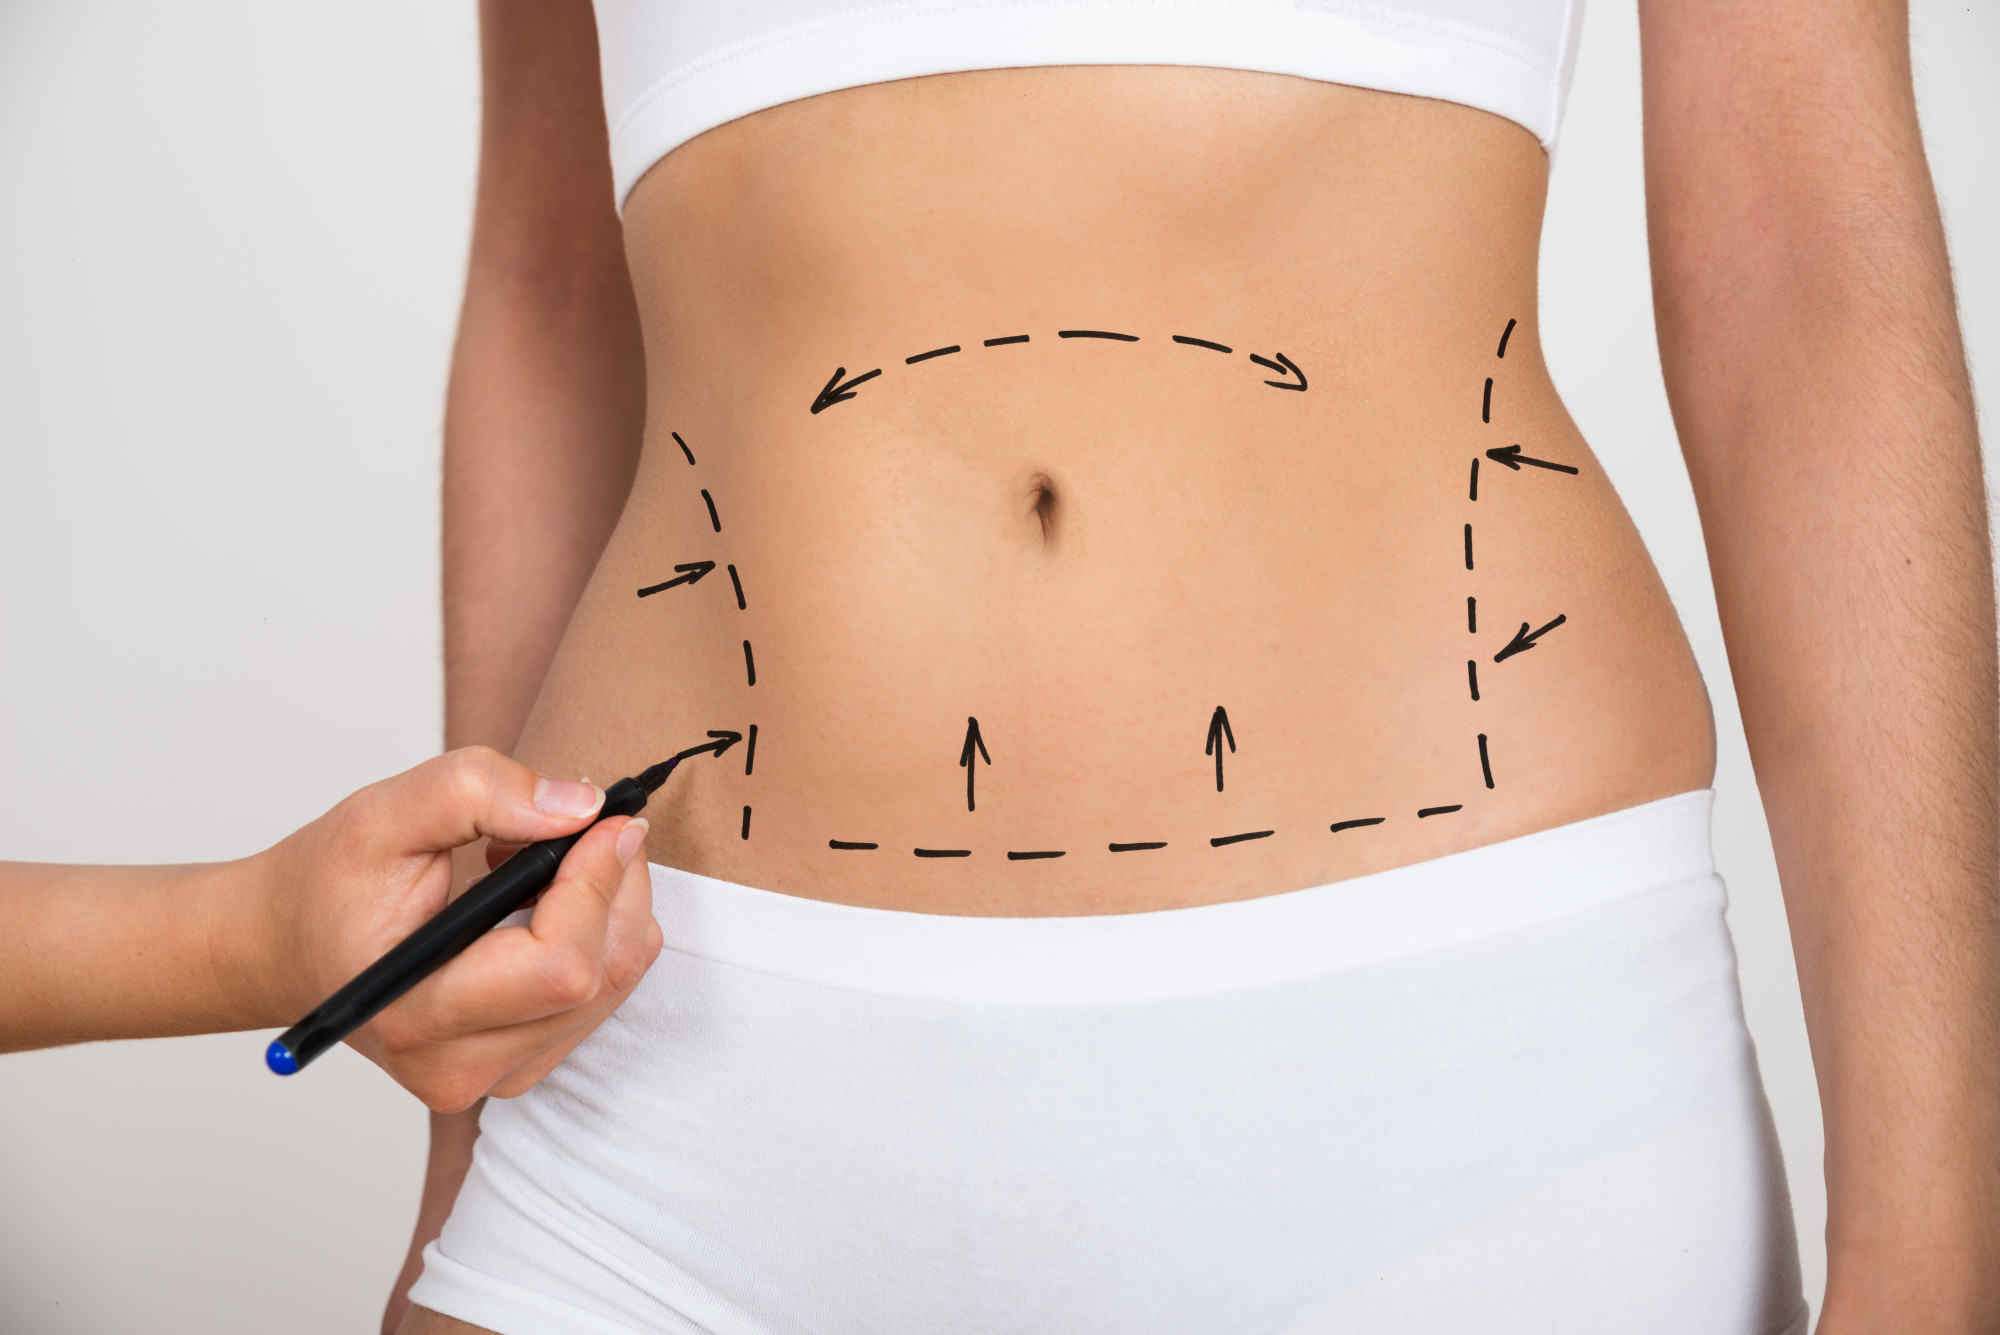 Cosmetic Surgery: What to Ask Your Surgeon Before Getting Implants